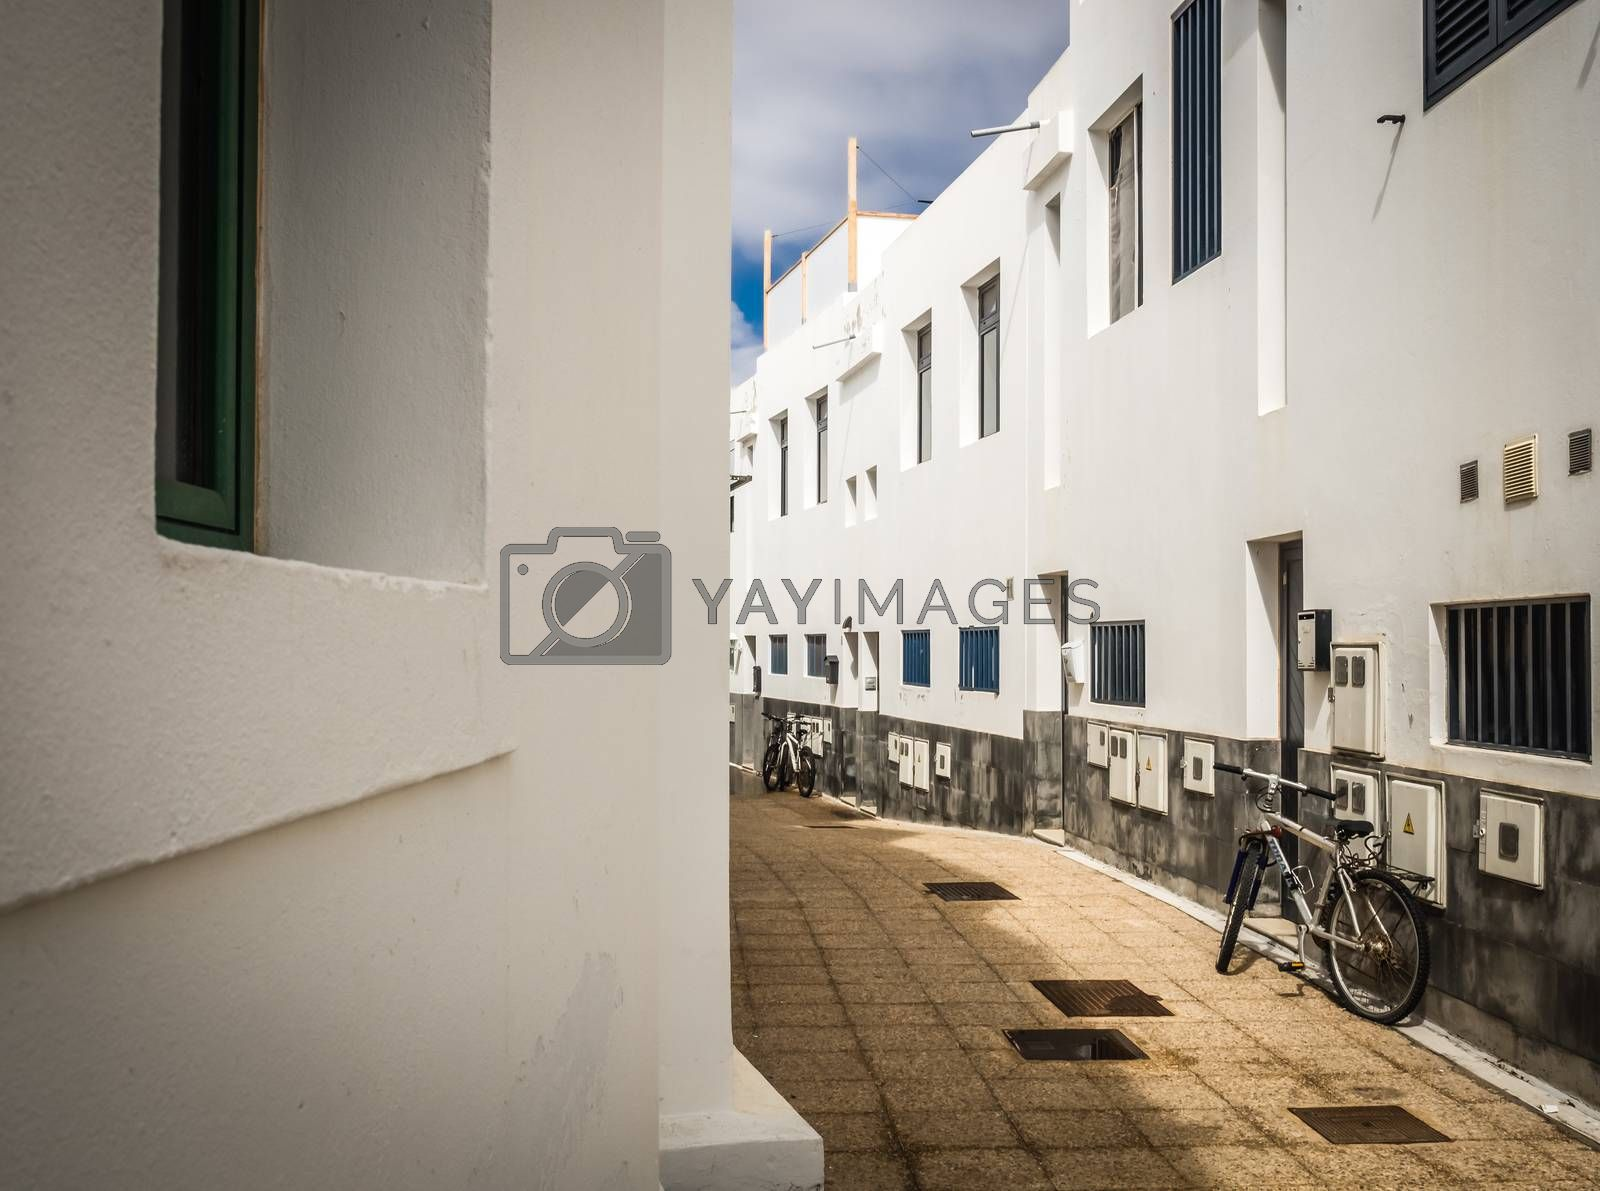 Bicycles parked in a narrow street in Playa Blanca, Lanzarote, Canary Islands, Spain. Picture taken 19 April 2016